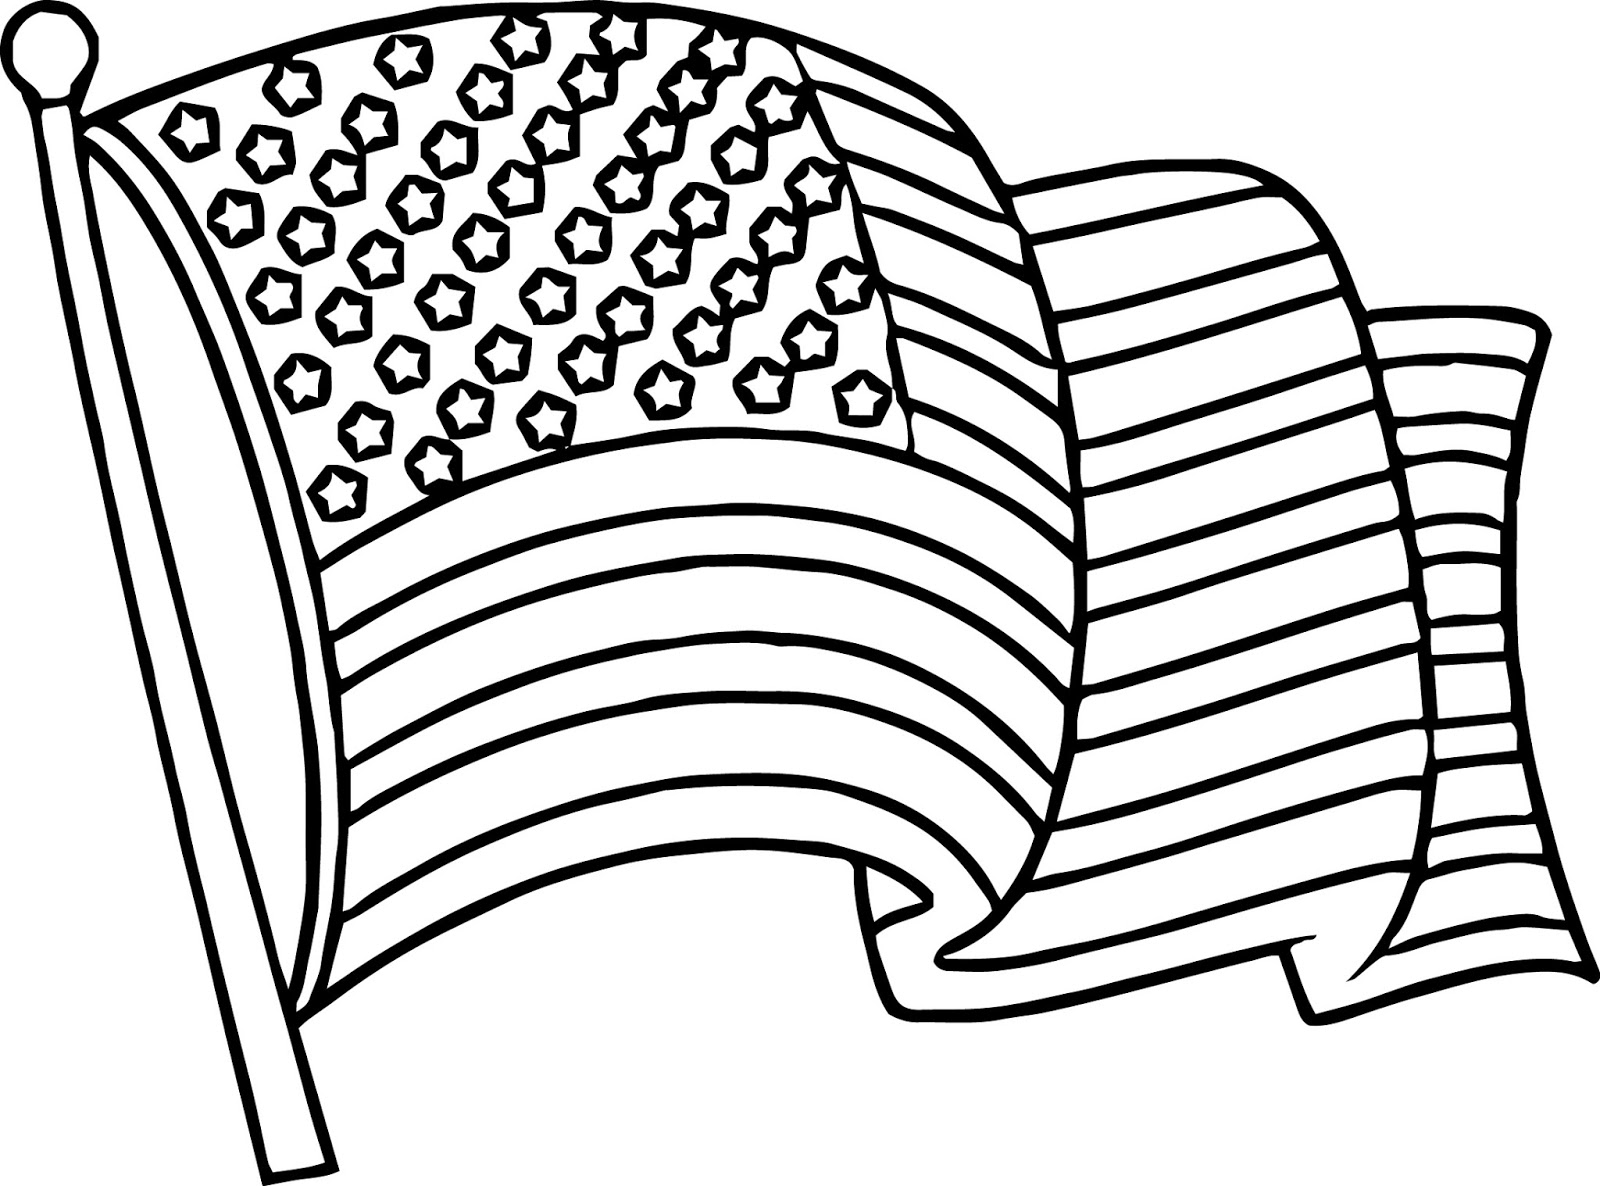 coloring page american flag american flag coloring pages you can print on the site flag american page coloring